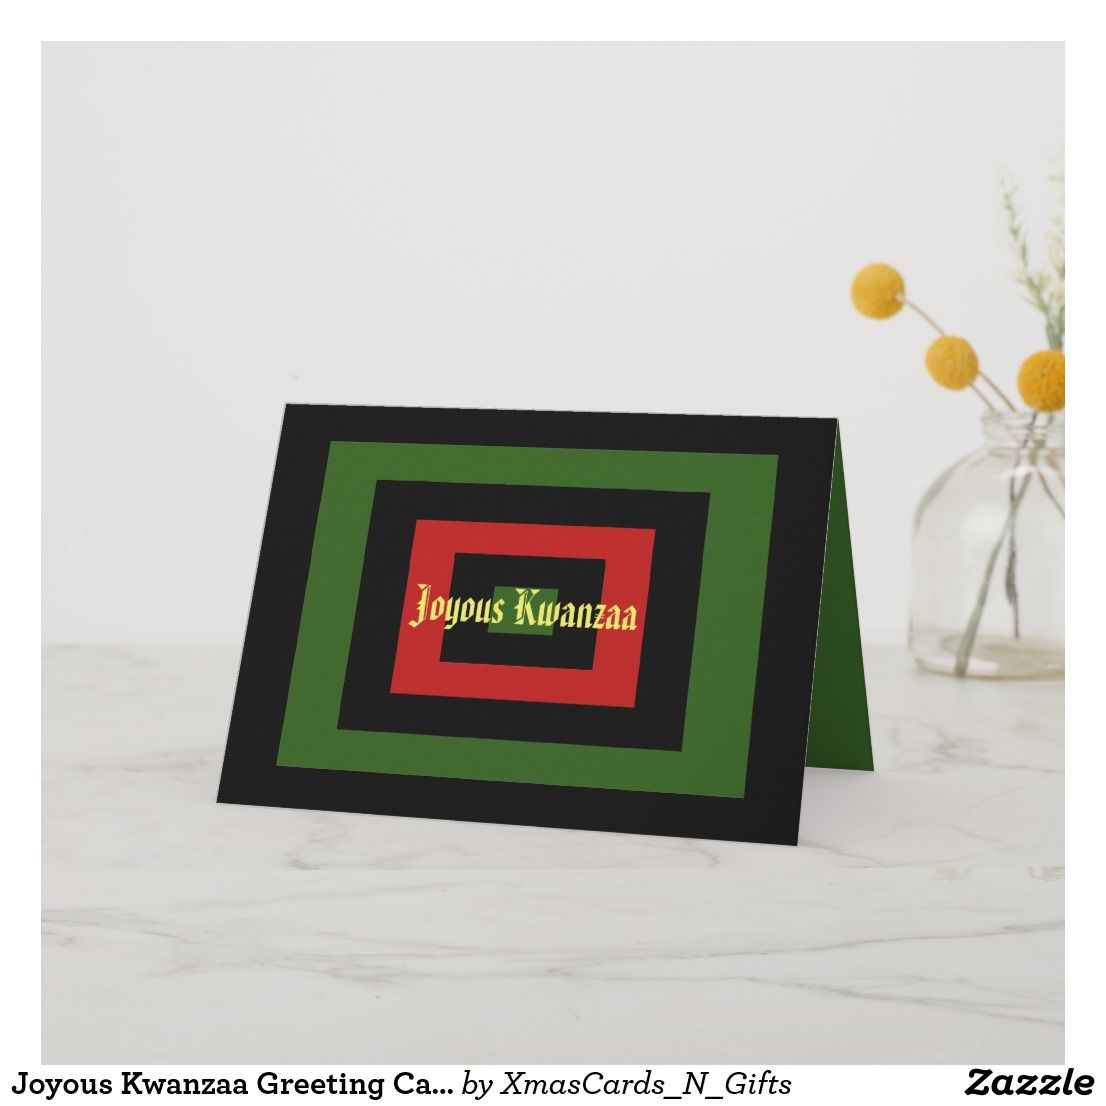 Joyous Kwanzaa Greeting Card